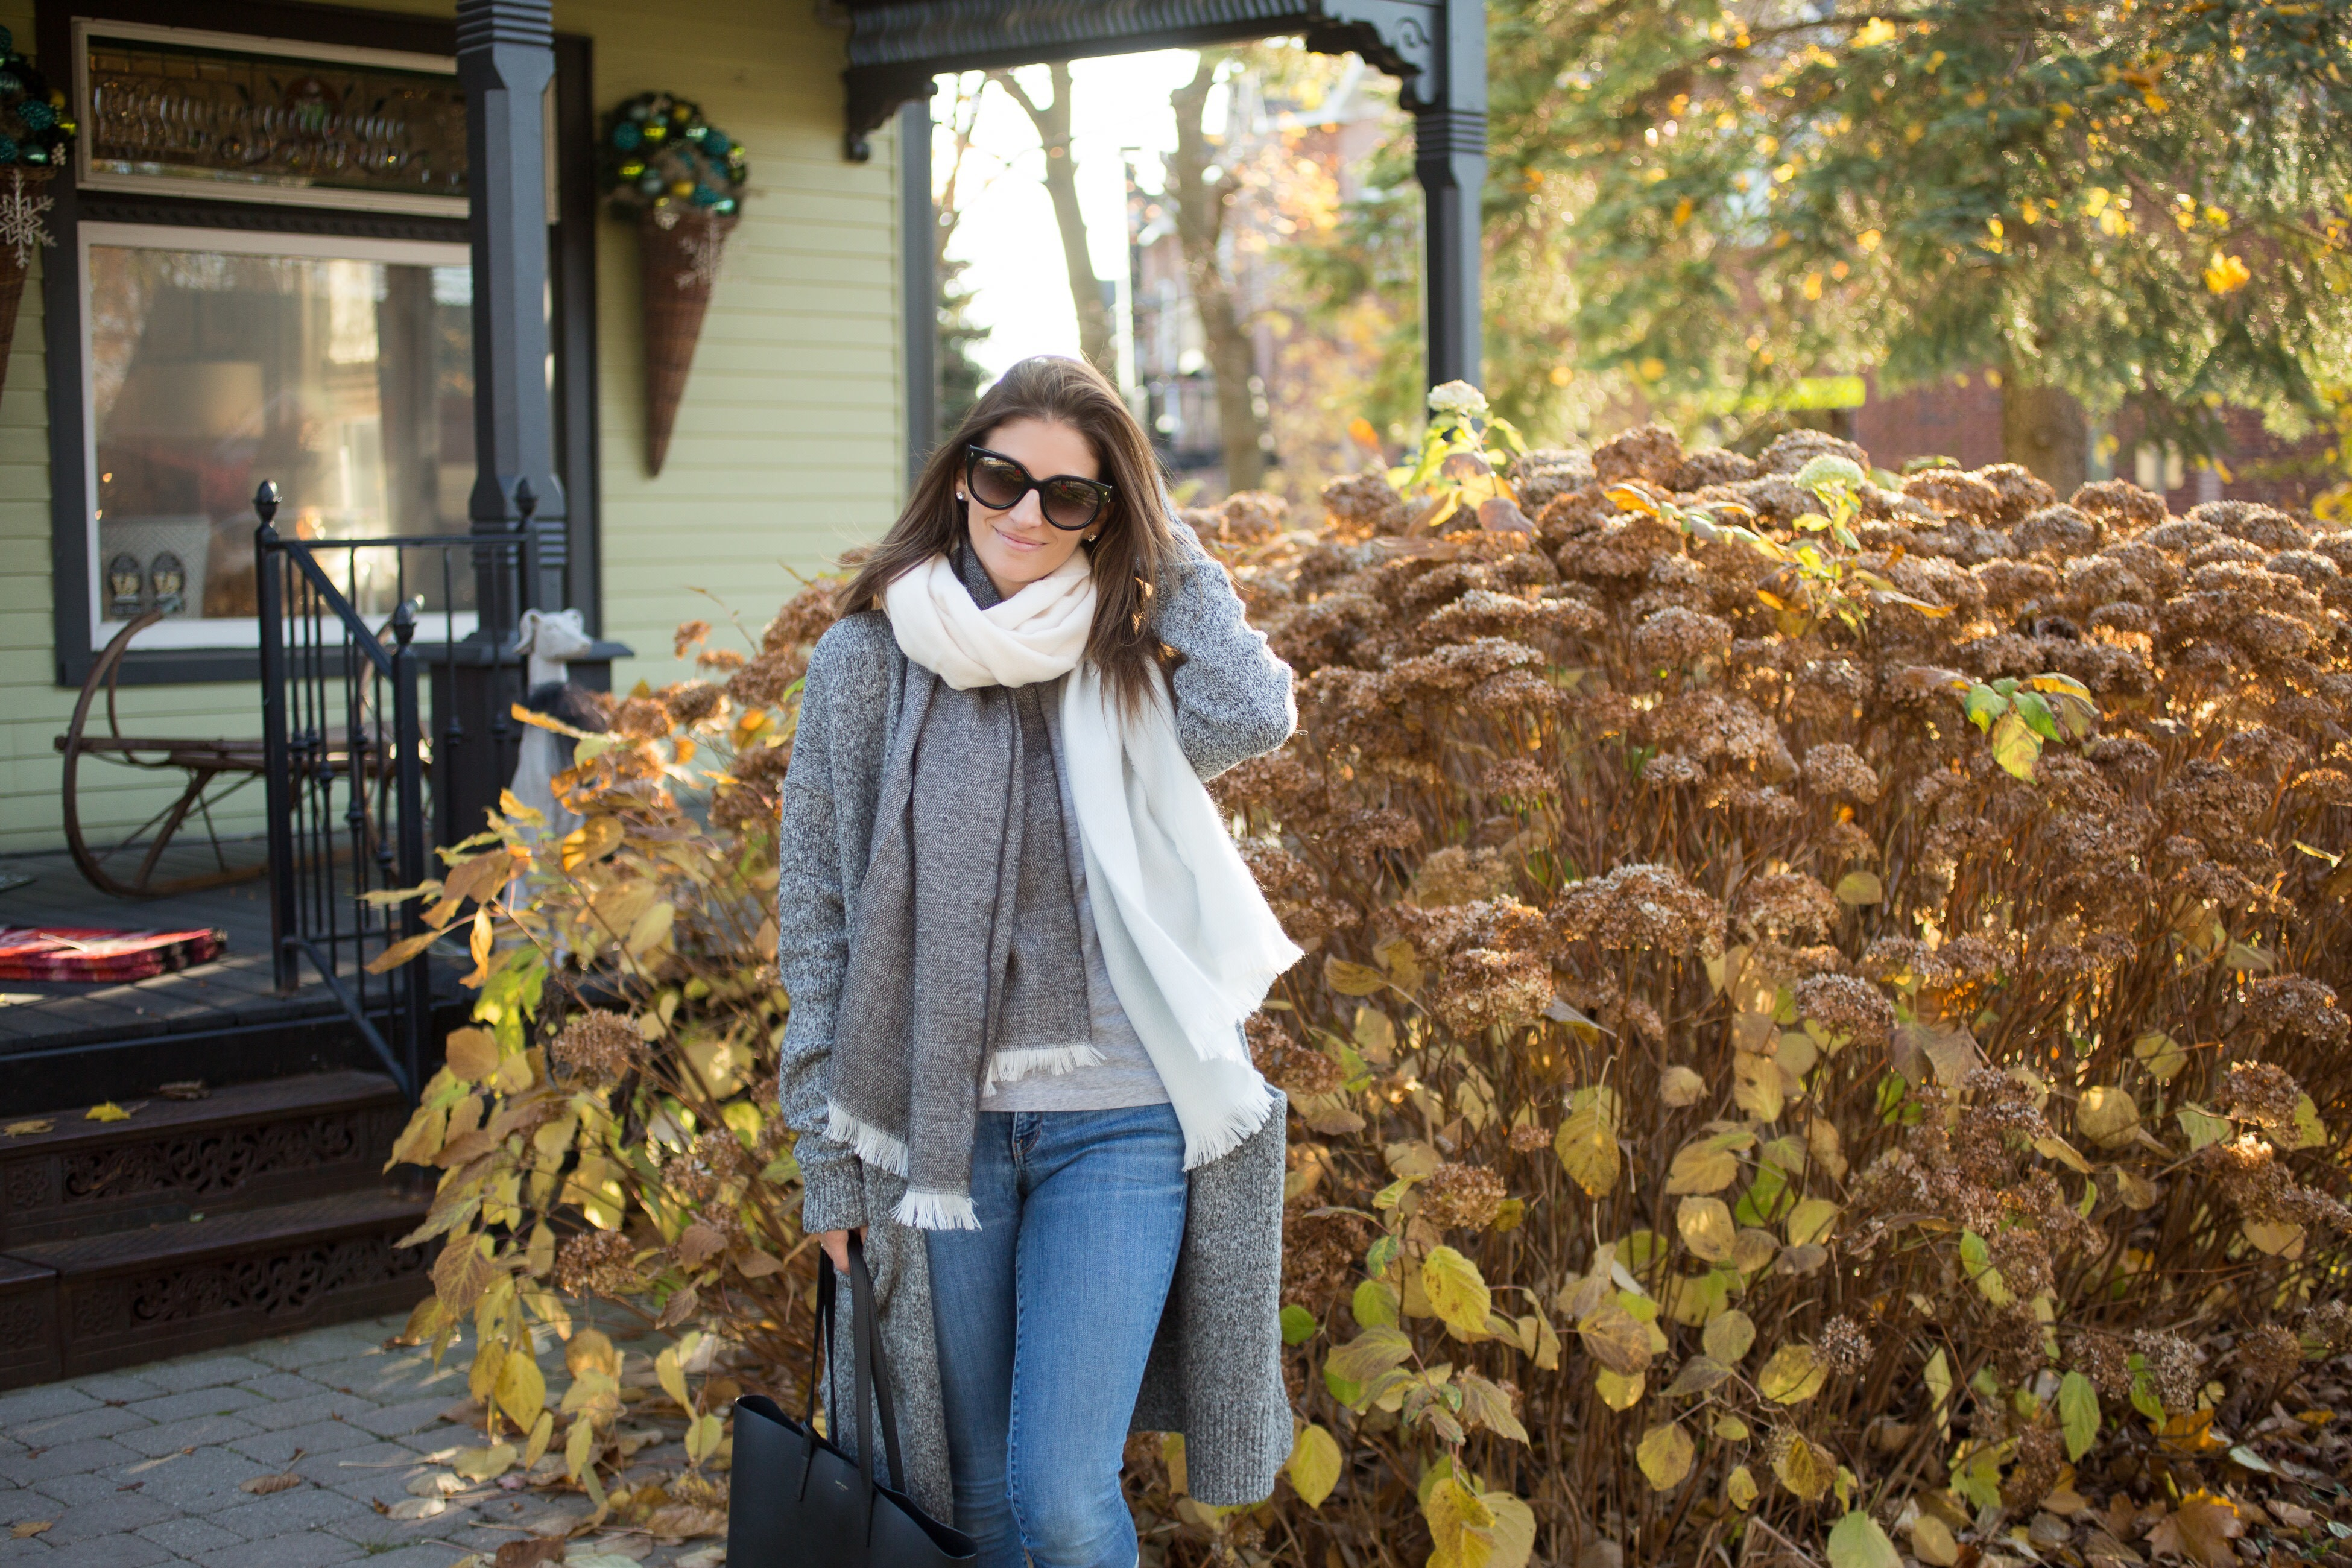 cozy weekend look with cardigan and scarf